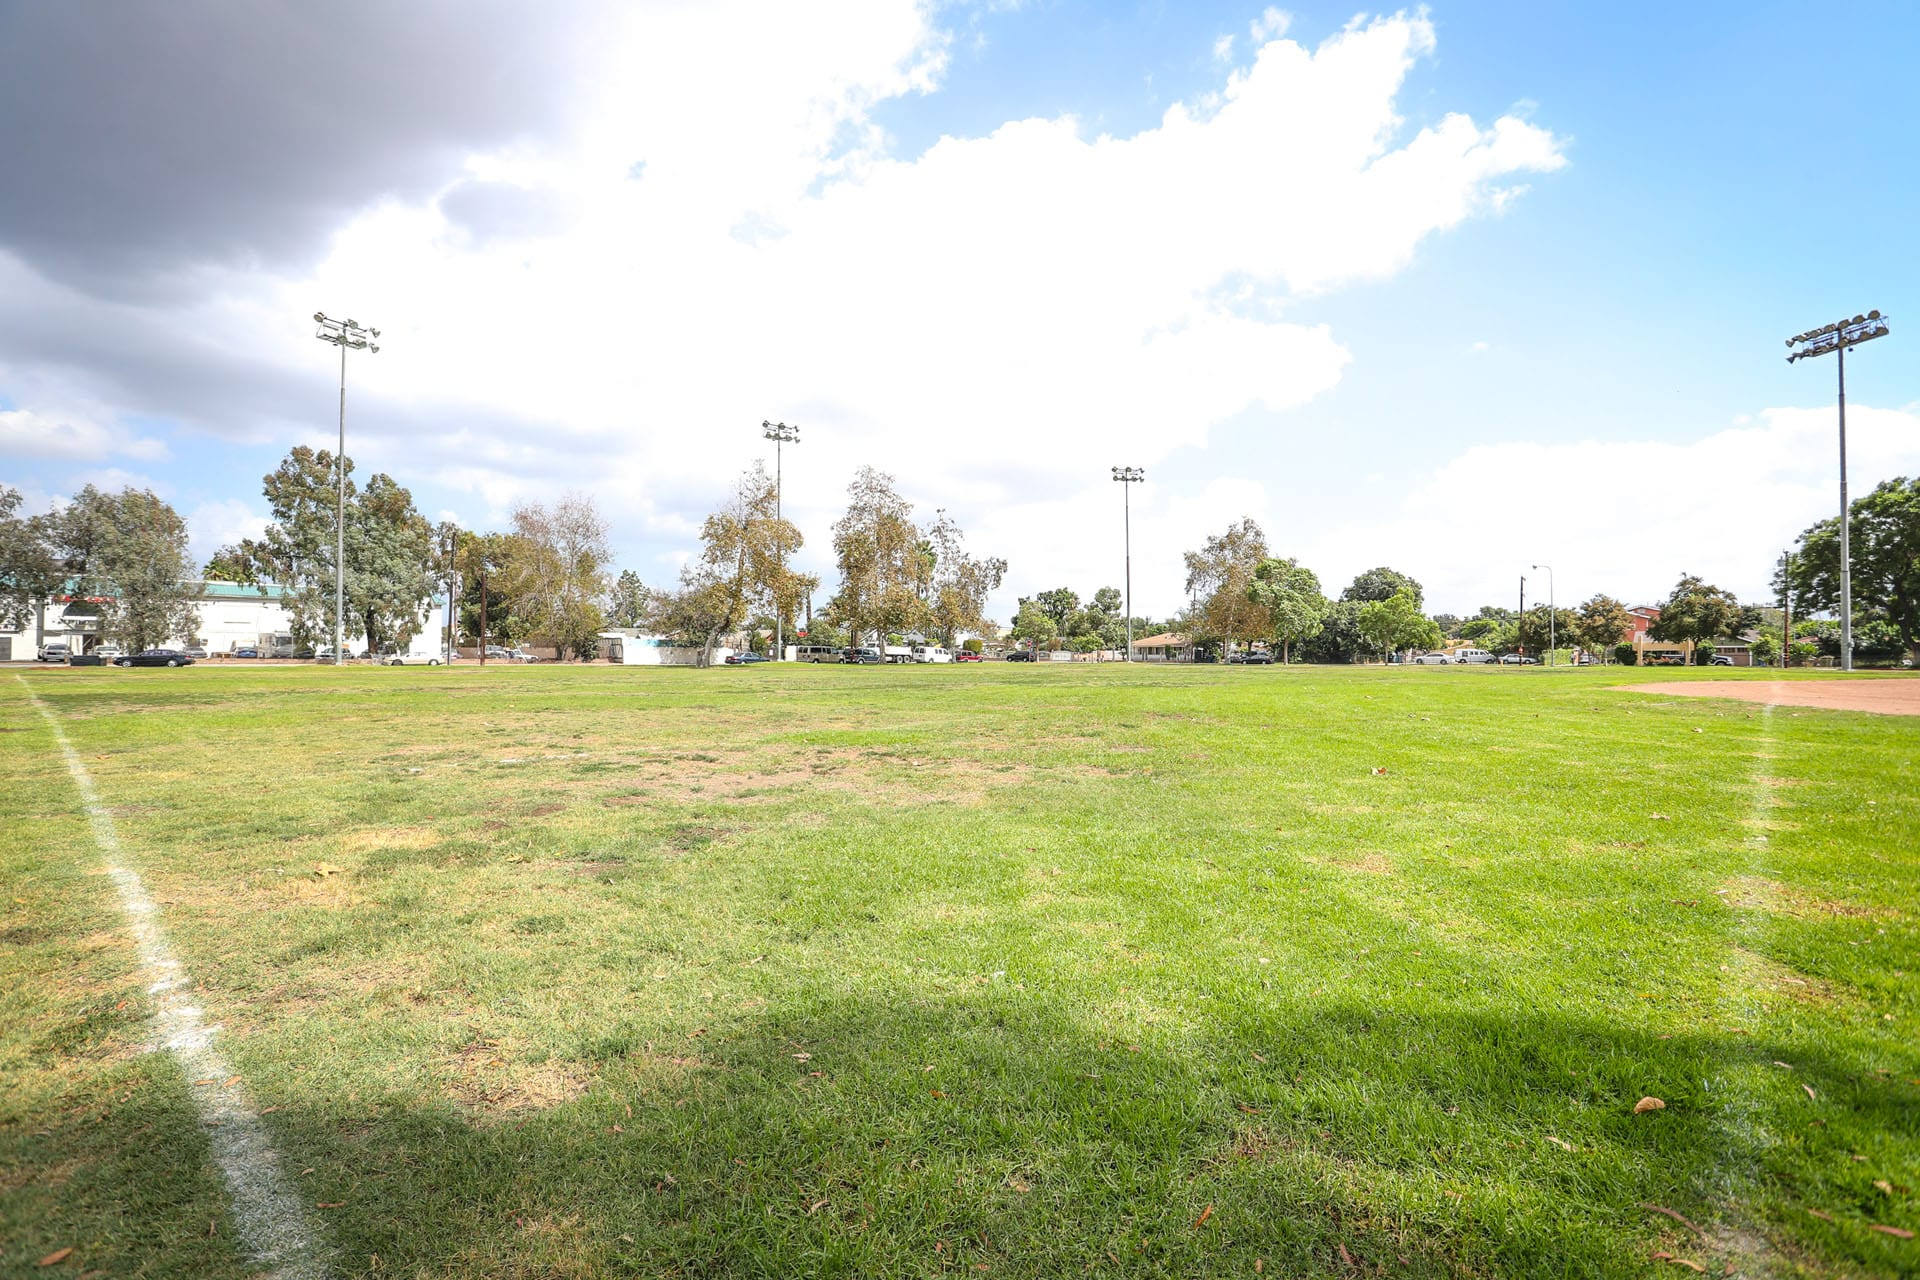 View of part of a baseball field